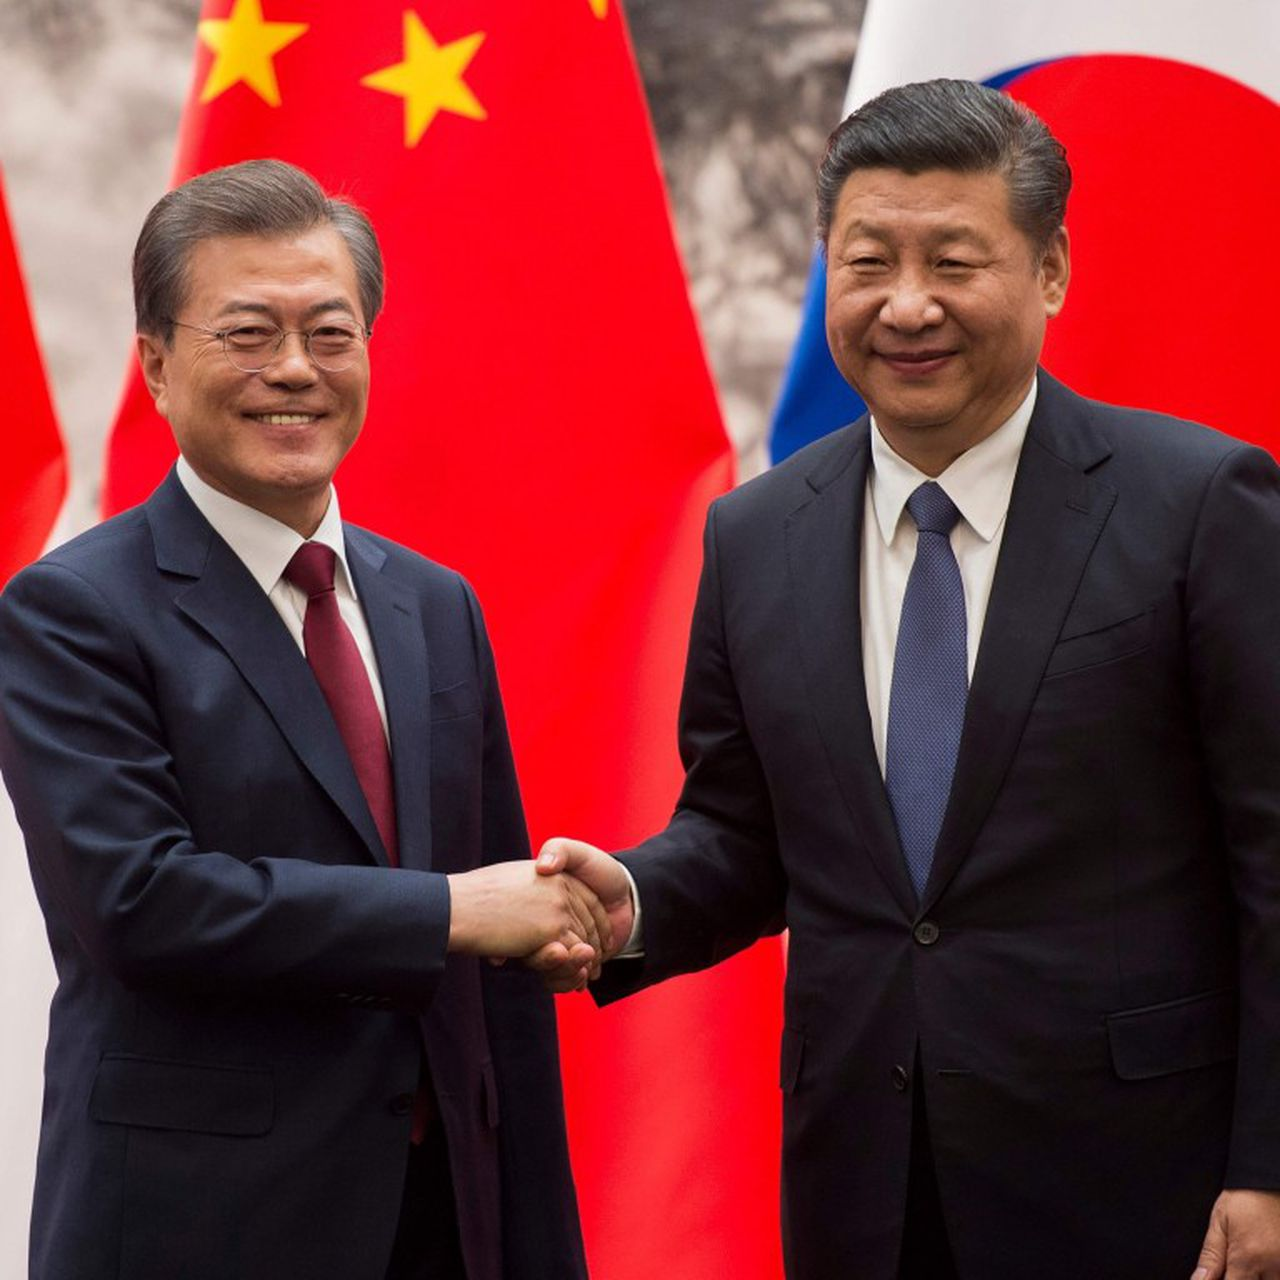 China tries to find a new economic partner in South Korea